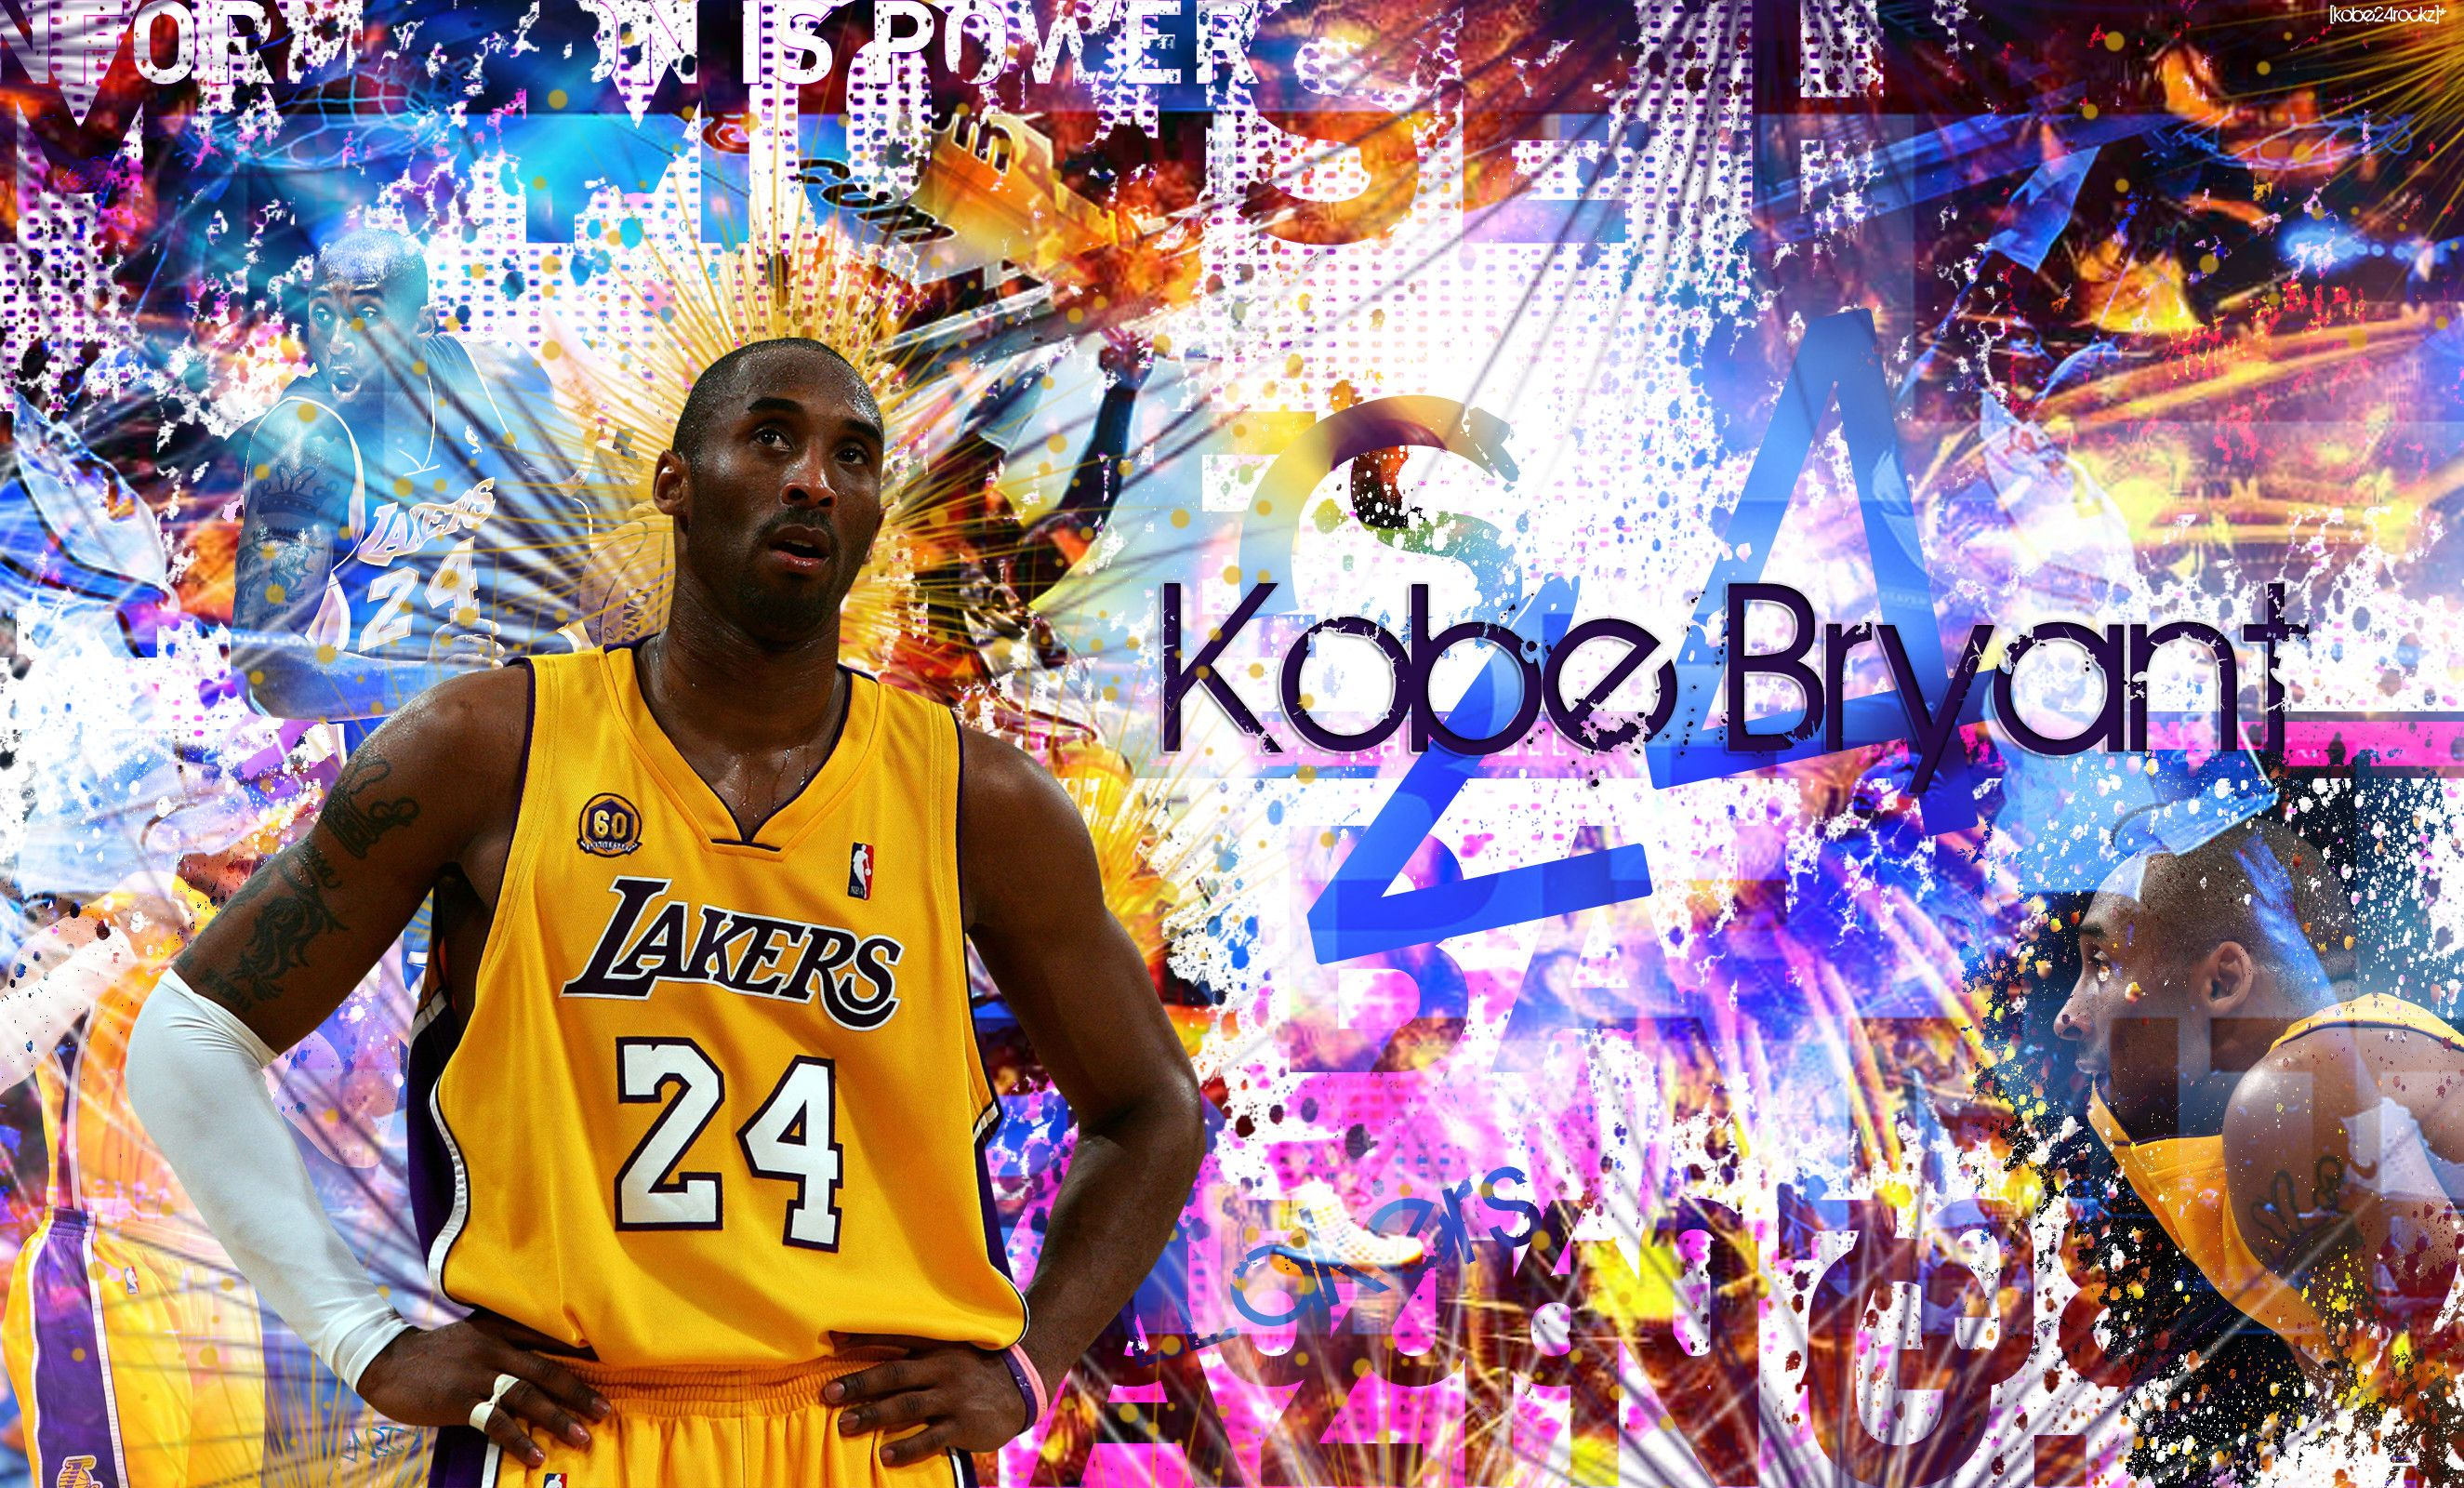 Cool Kobe Wallpapers   Top Cool Kobe Backgrounds 2650x1600